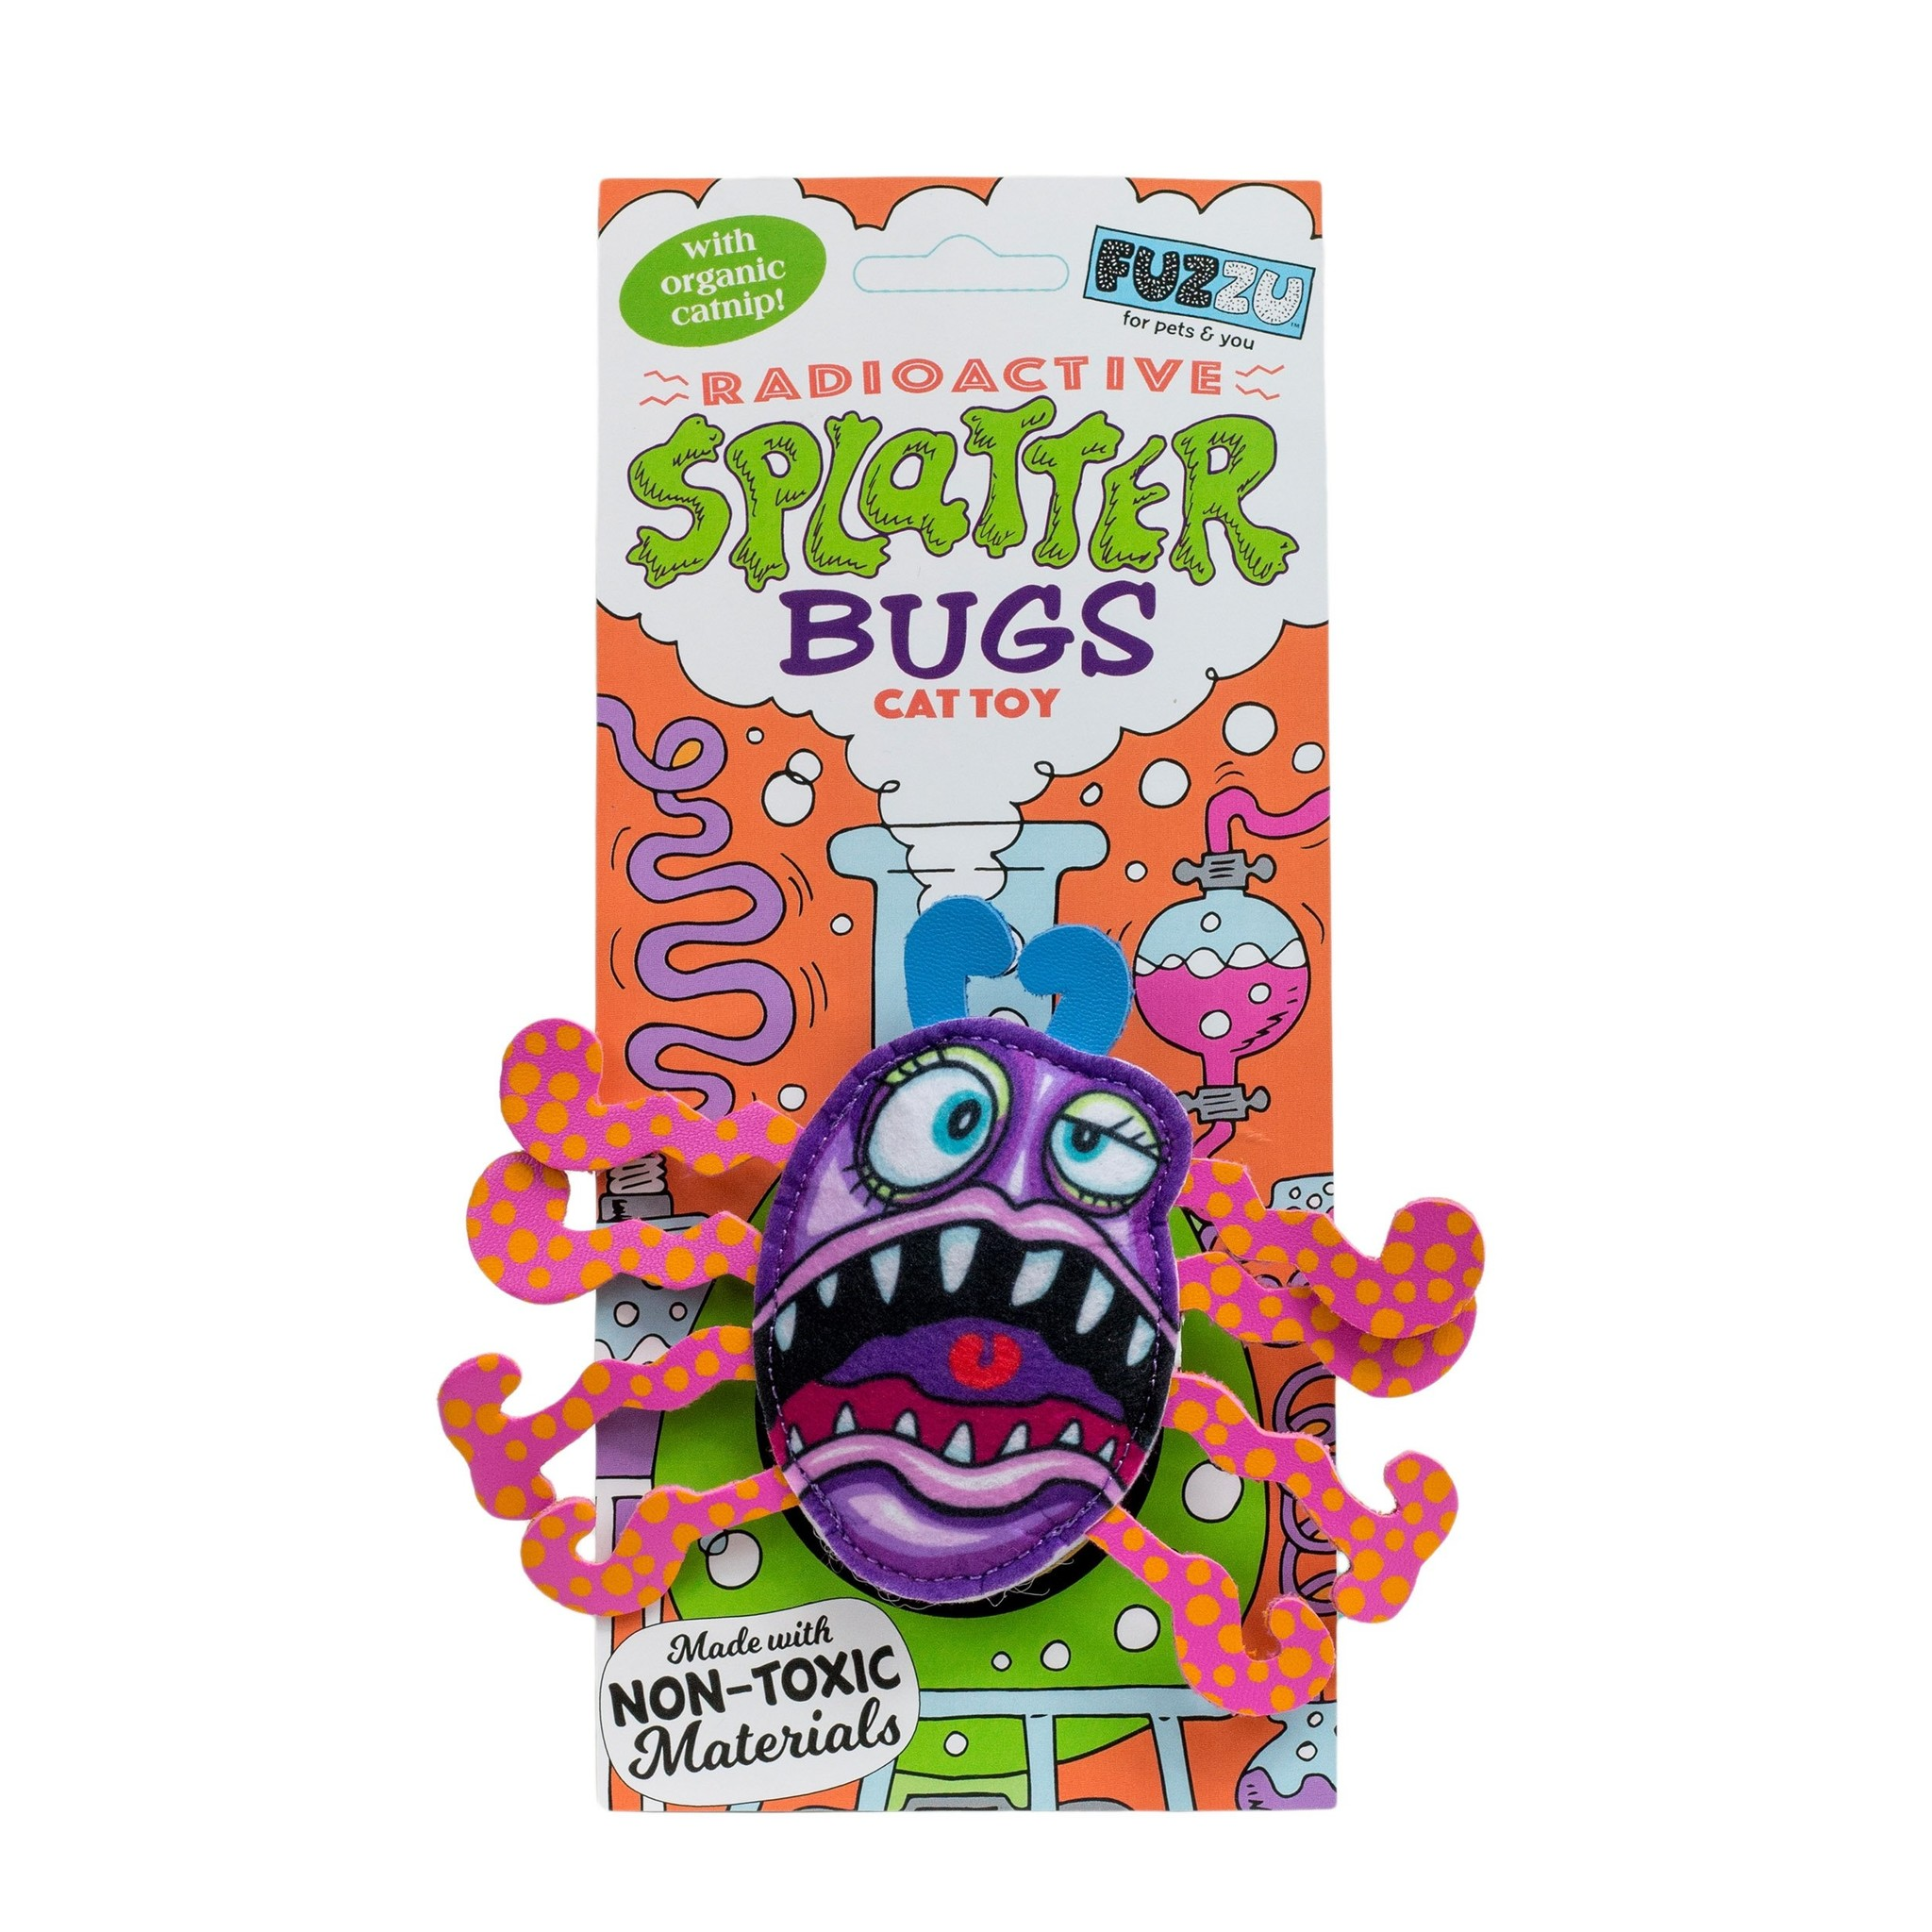 Fuzzu Radioactive Splatterbugs Frazz